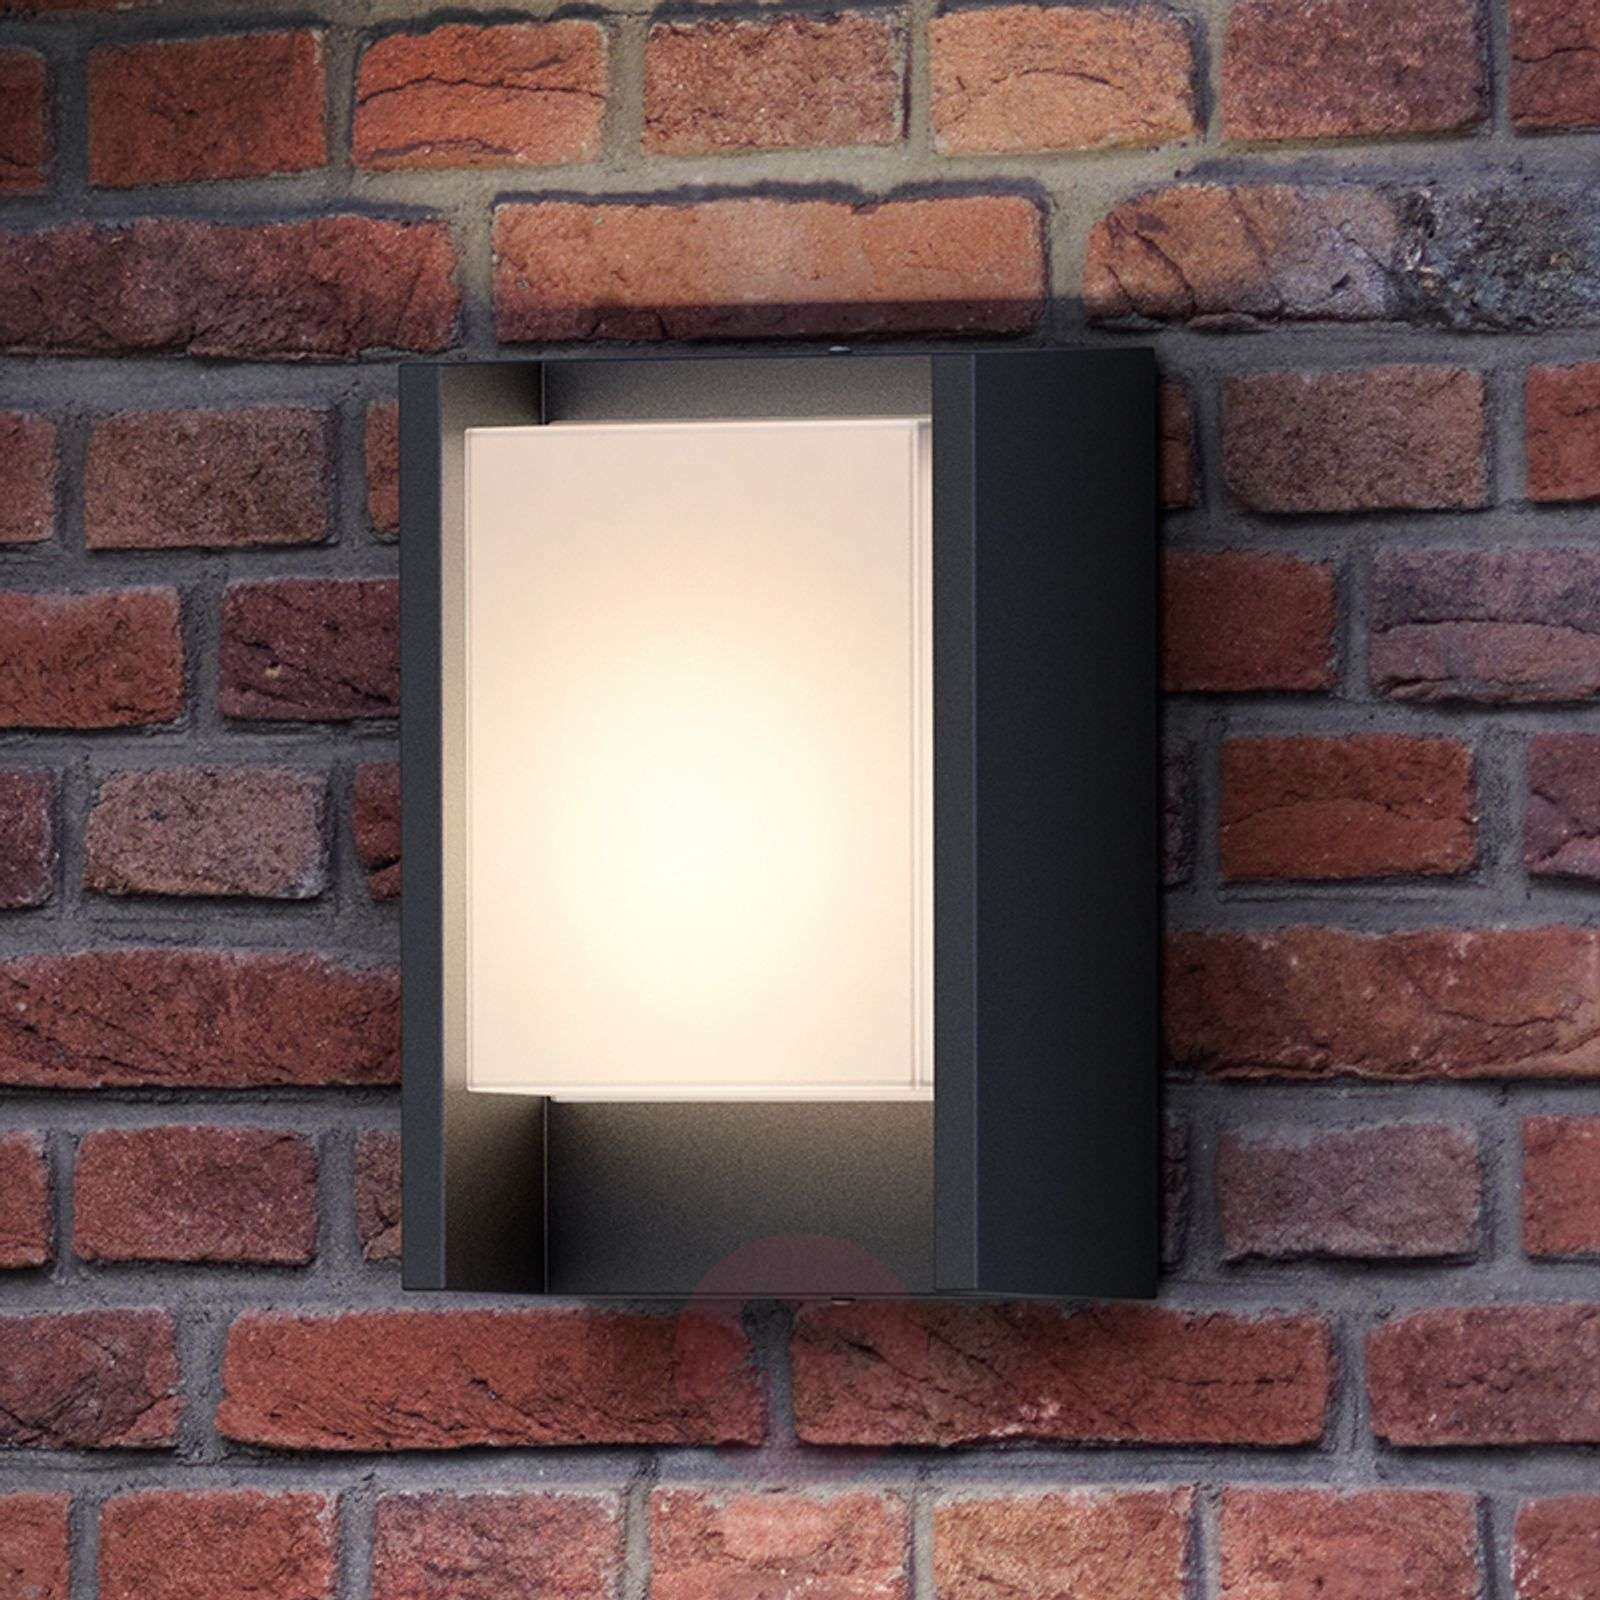 Anthracite-coloured LED outdoor wall light Arbour | Lights ... on Led Wall id=13756